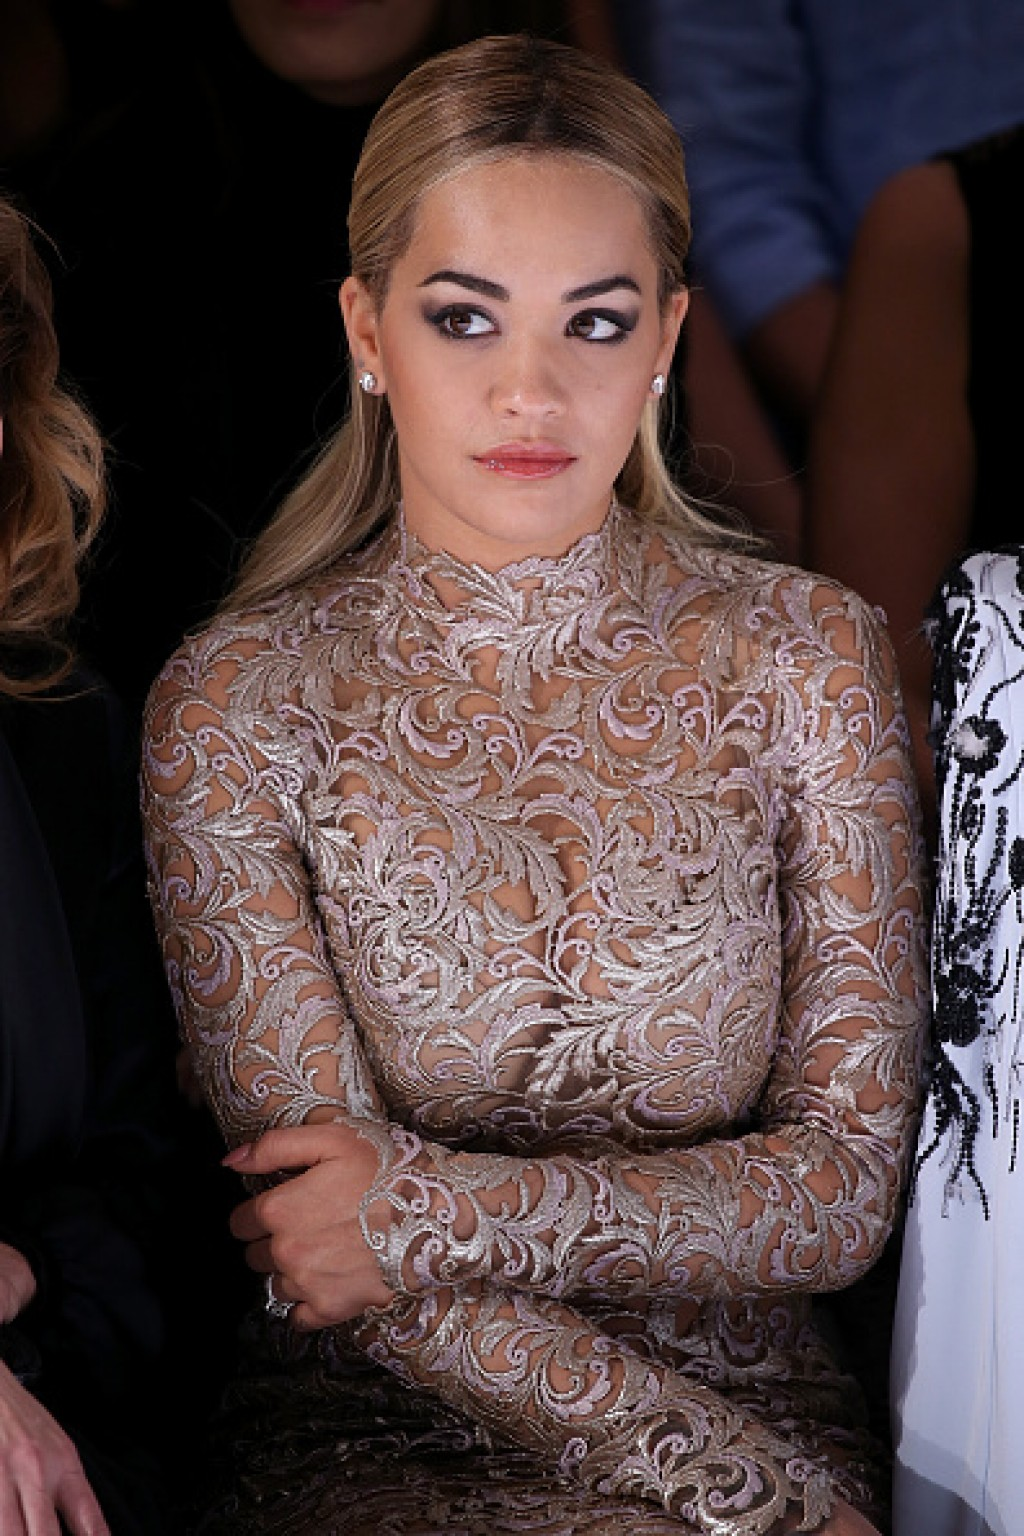 Ralph-Russo-Backstage-Paris-Fashion-Week-Haute-Couture-Spring-Summer-2016-Rita-Ora-1024x1536